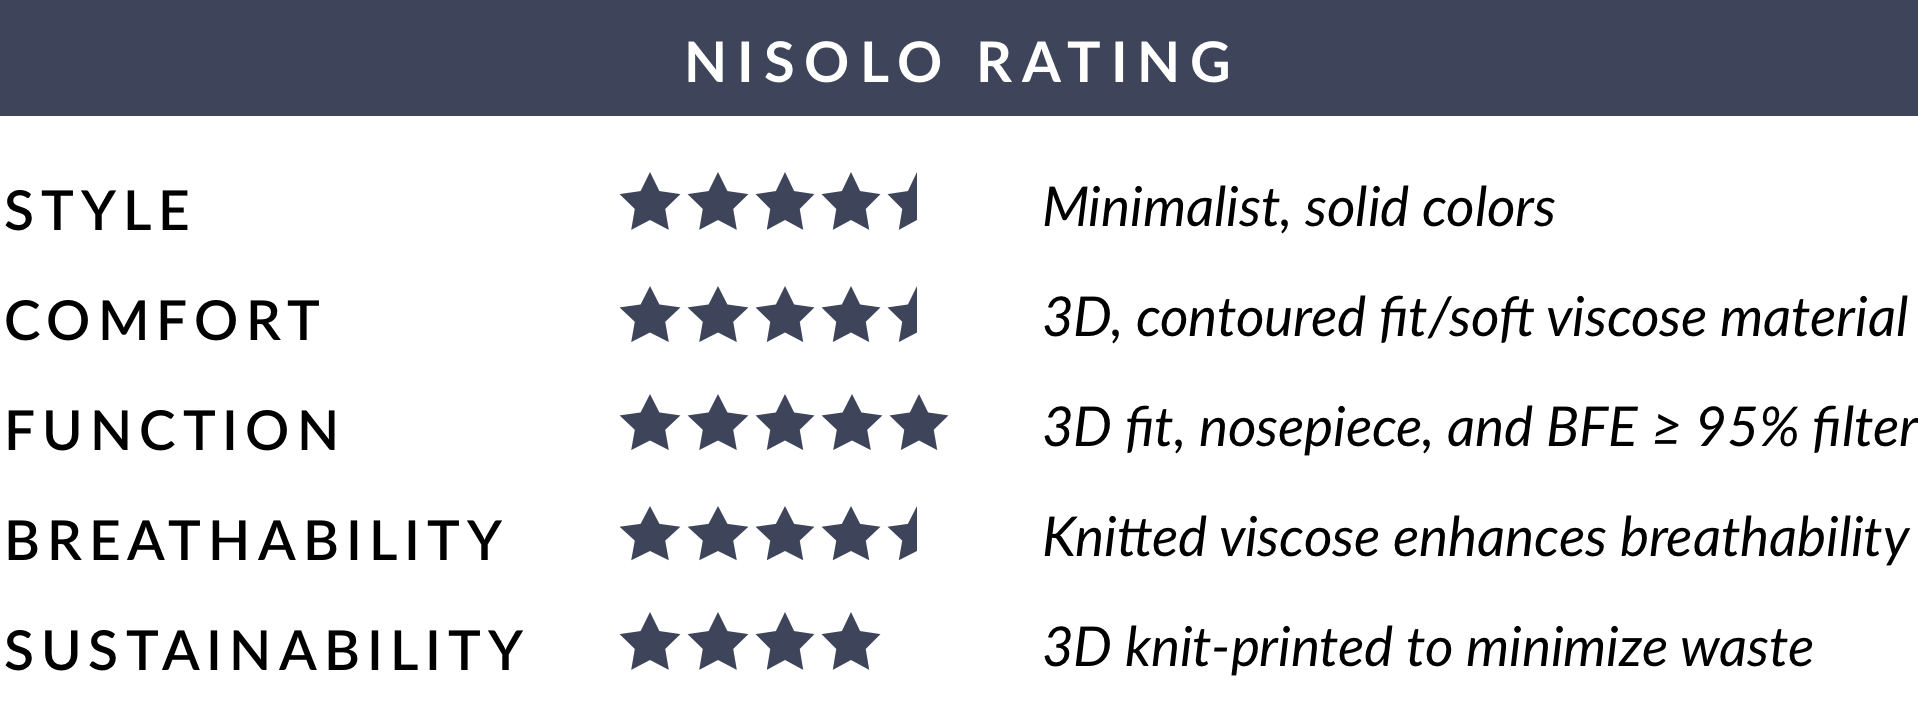 Nisolo Rating of Ministry of Supply 3D Print-Knit Filtered Mask + 10 Filters - Light Grey - Average of 4.5 out of 5 stars